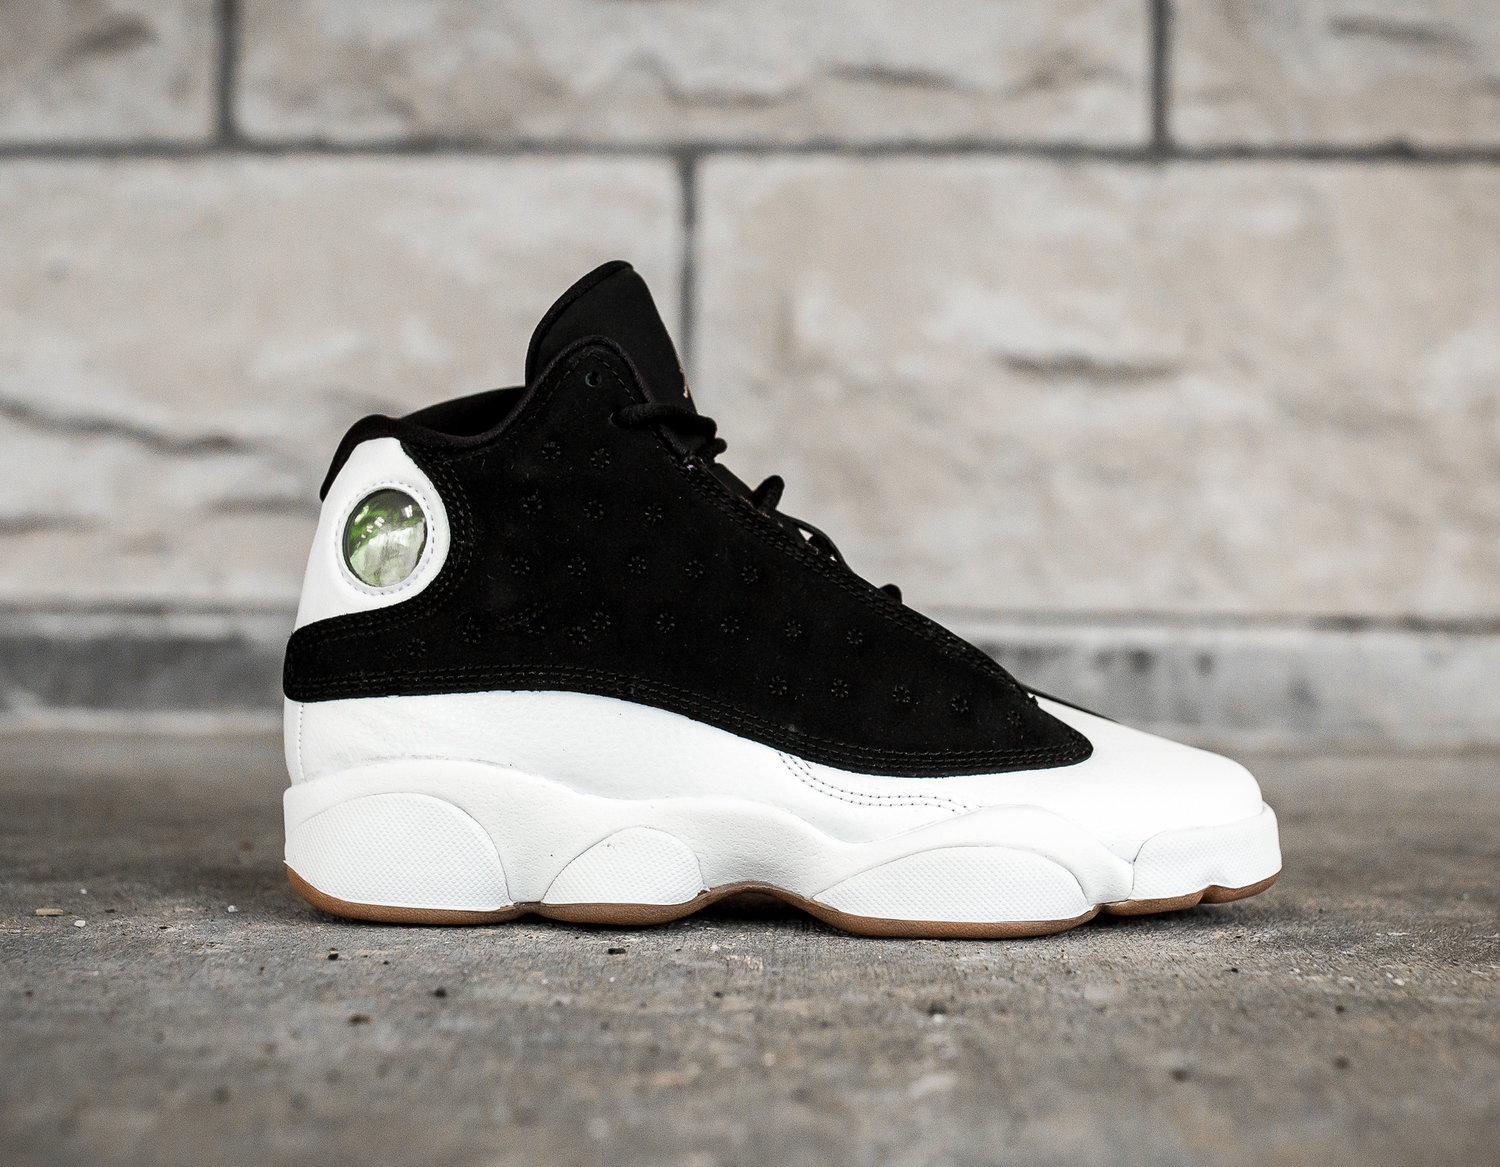 wholesale dealer 8a3d9 bb787 Now Available  Air Jordan 13 Retro GG